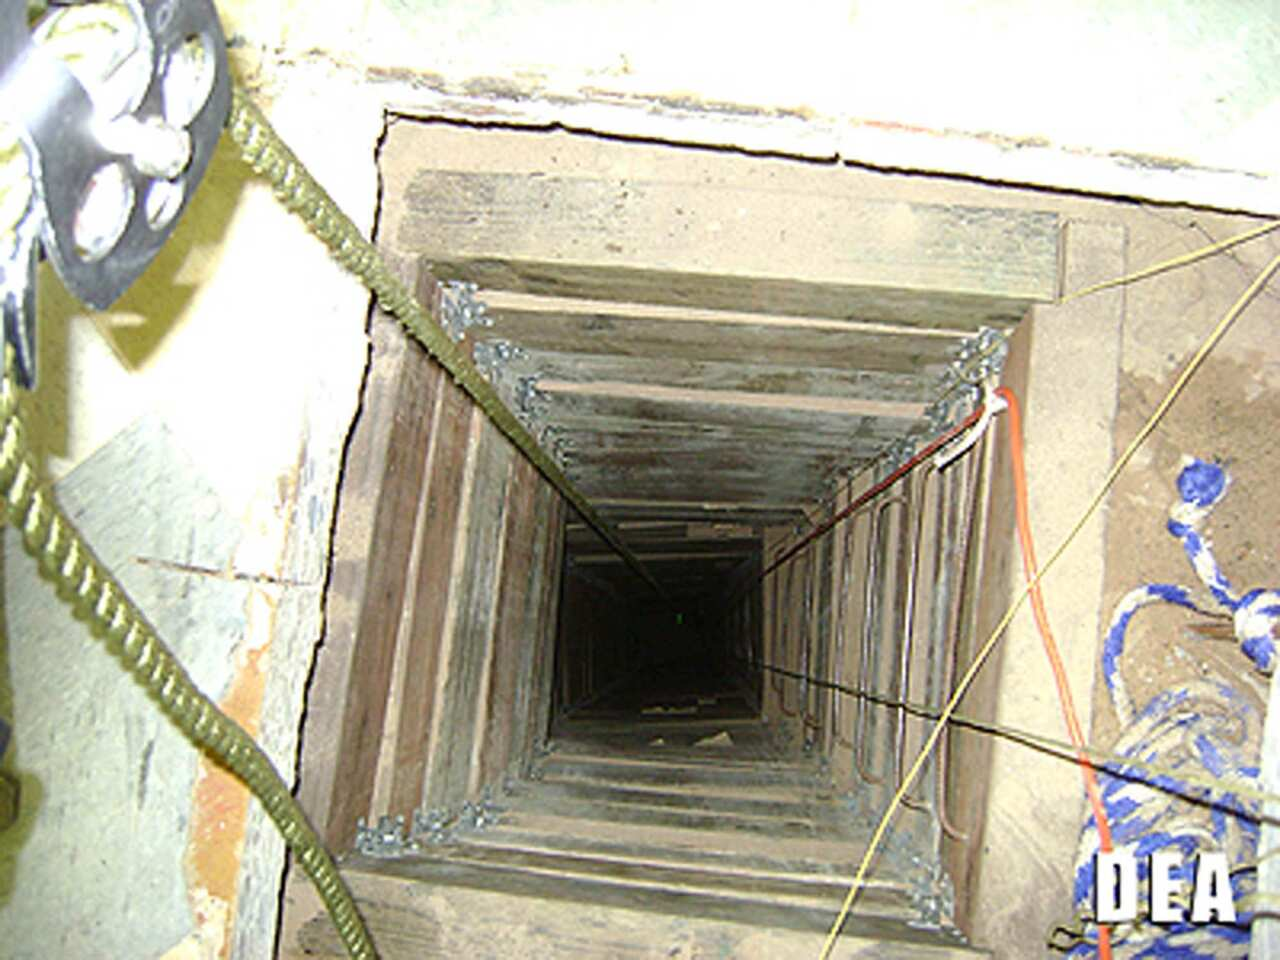 The tunnel shaft on the U.S. side descends 57 feet from a small, nondescript warehouse in San Luis, Ariz.